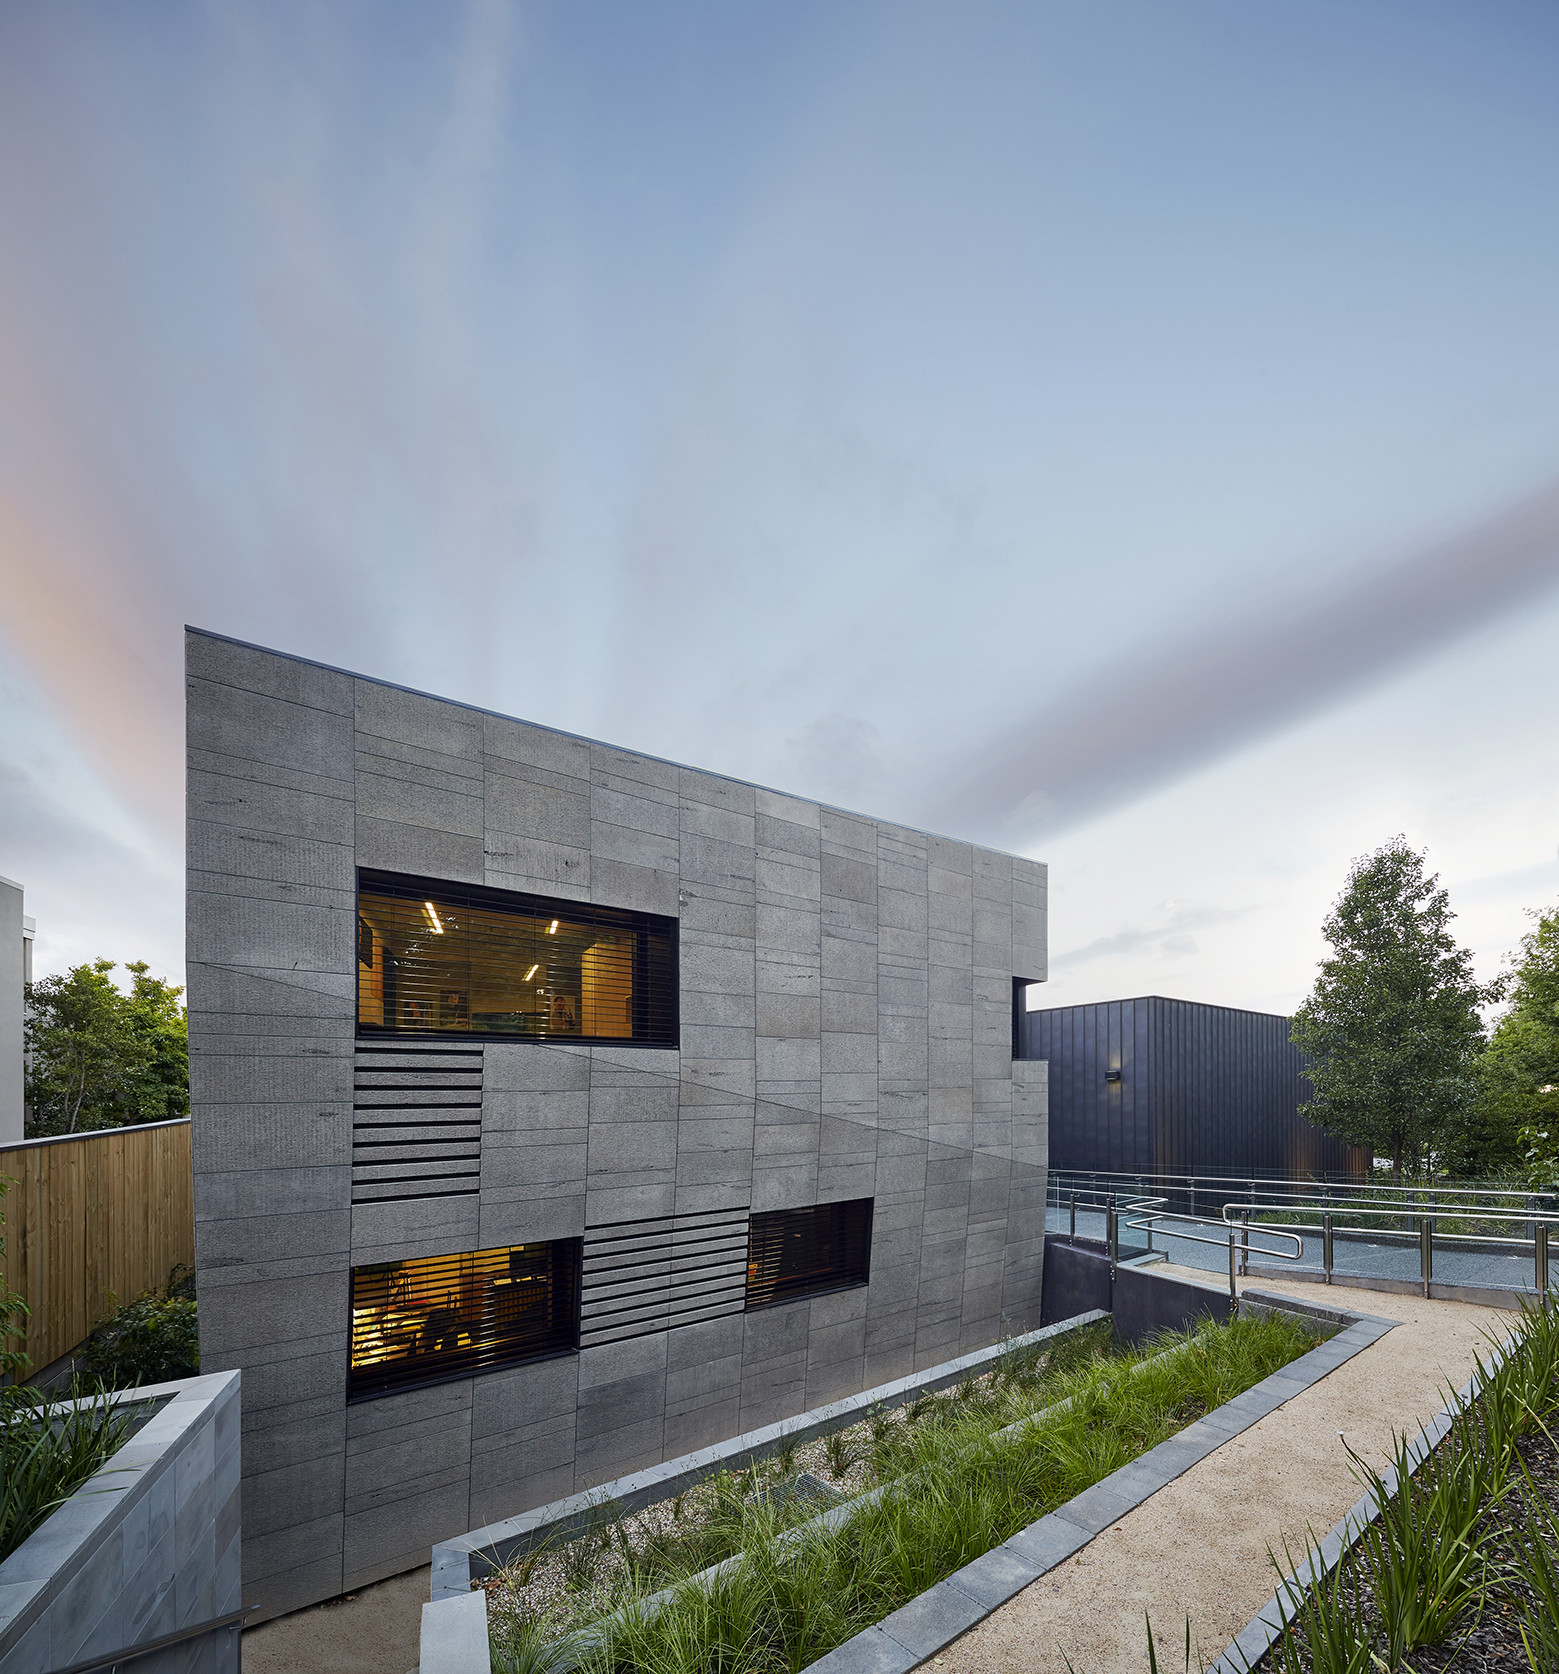 Built Projects | ArchDaily, page 473